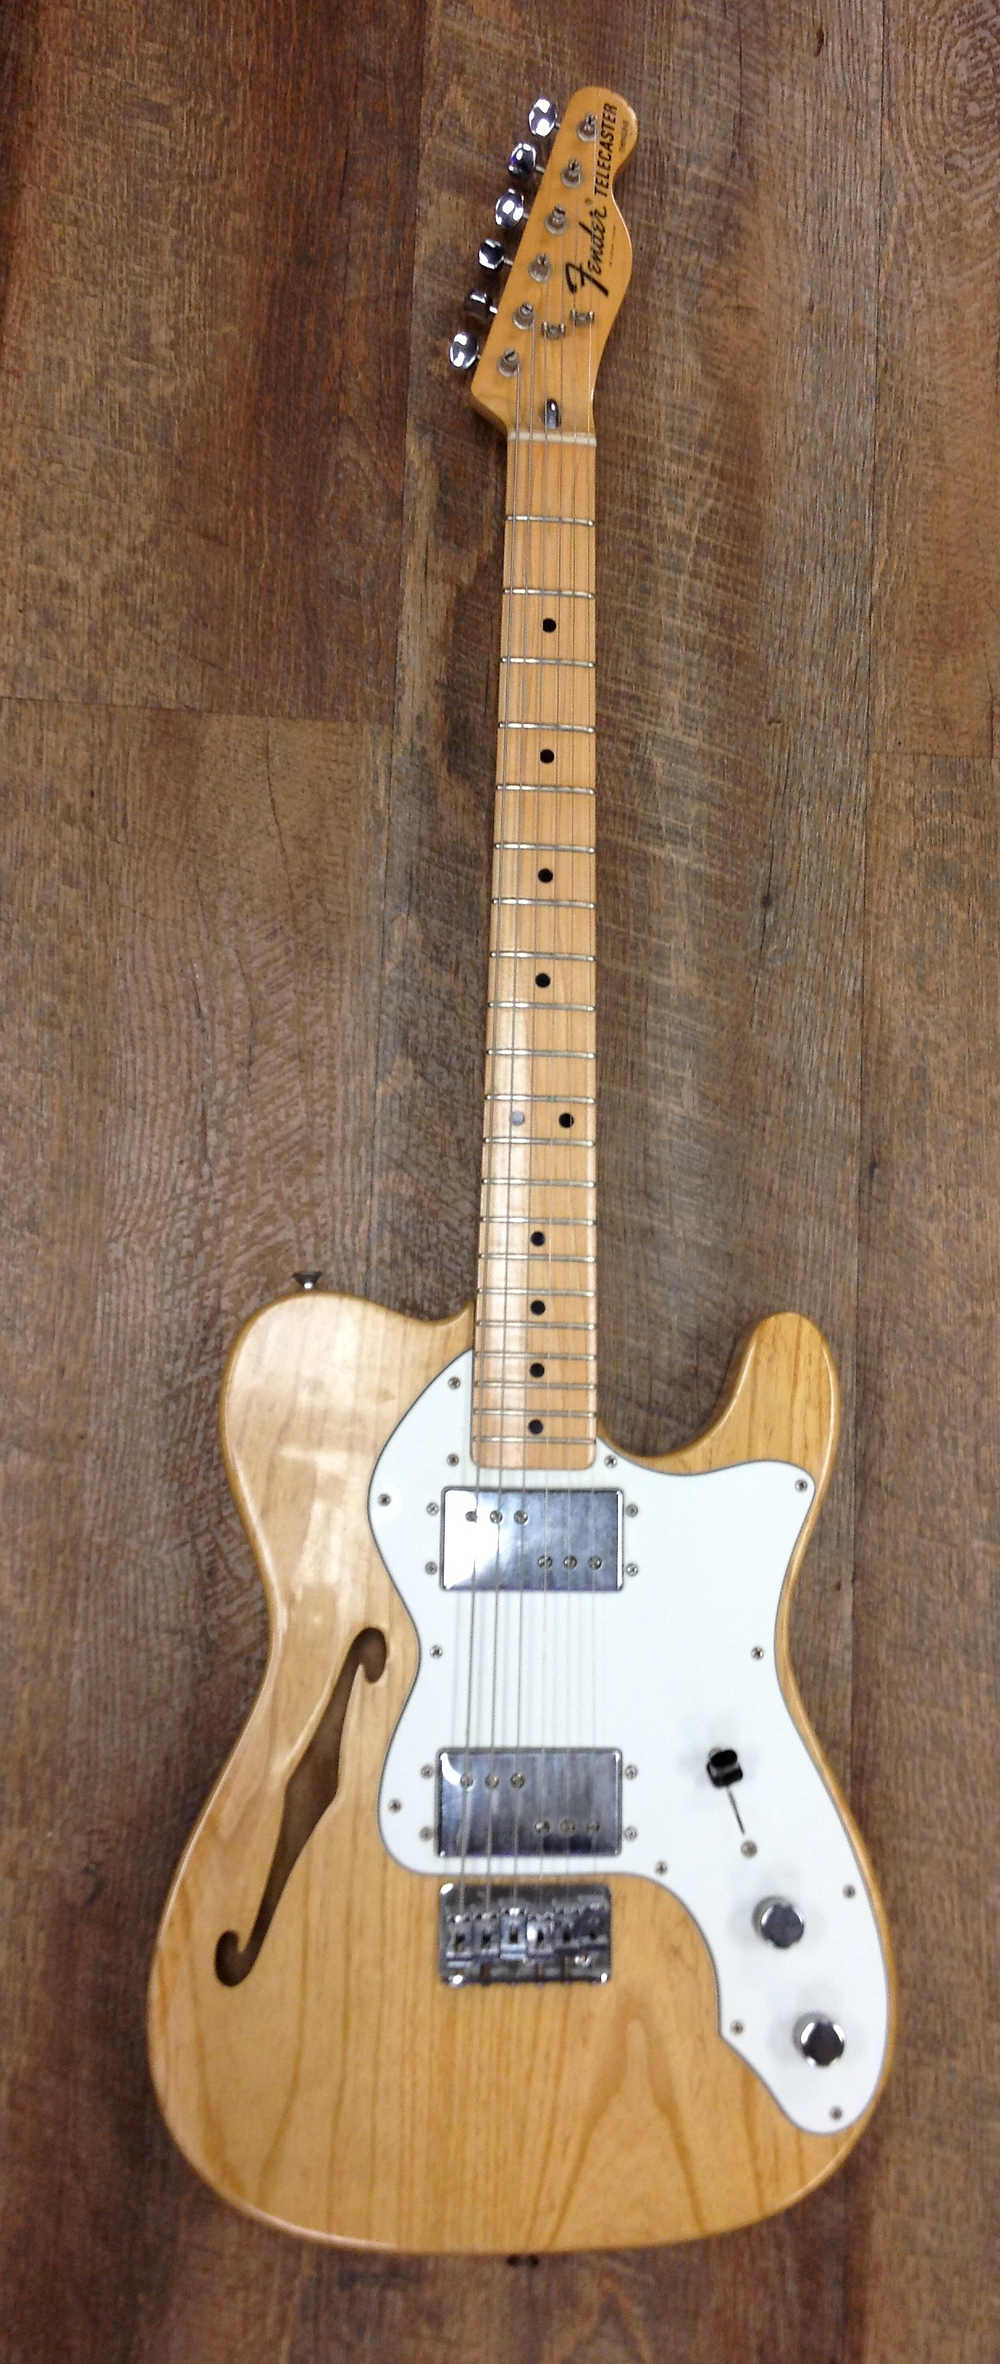 1976 FENDER TELE THINLINEa.png